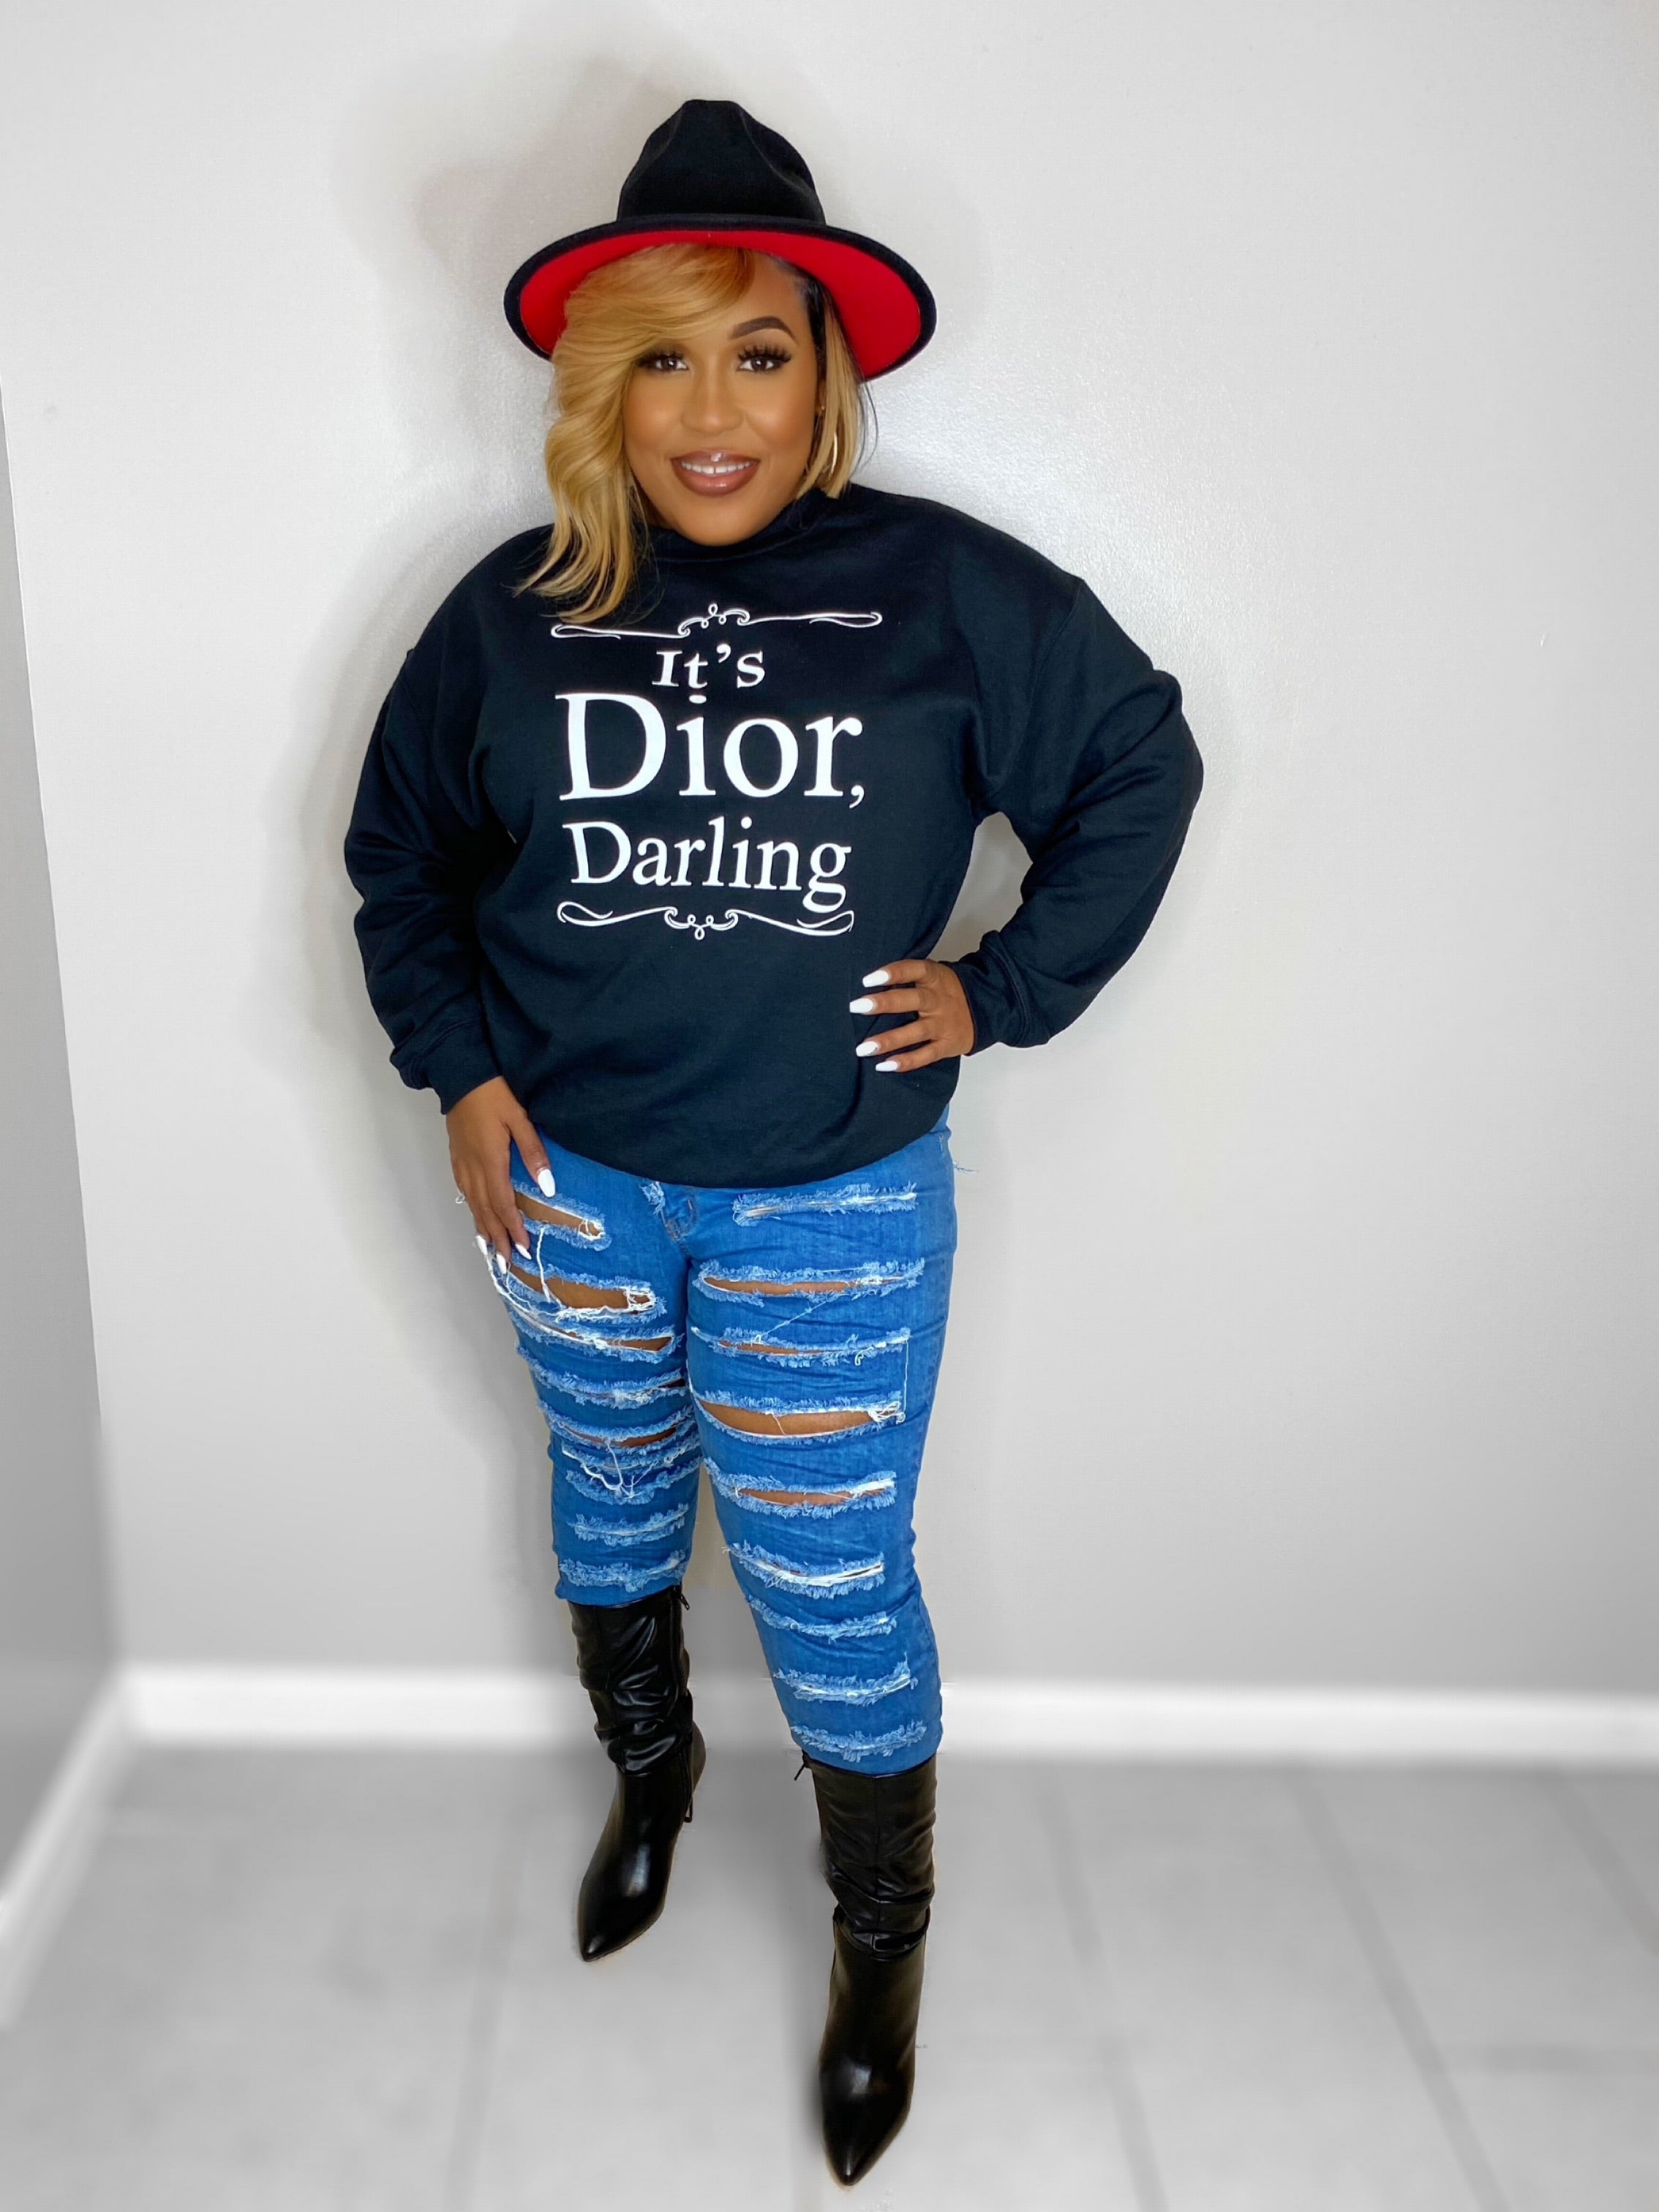 It's Dior Darling